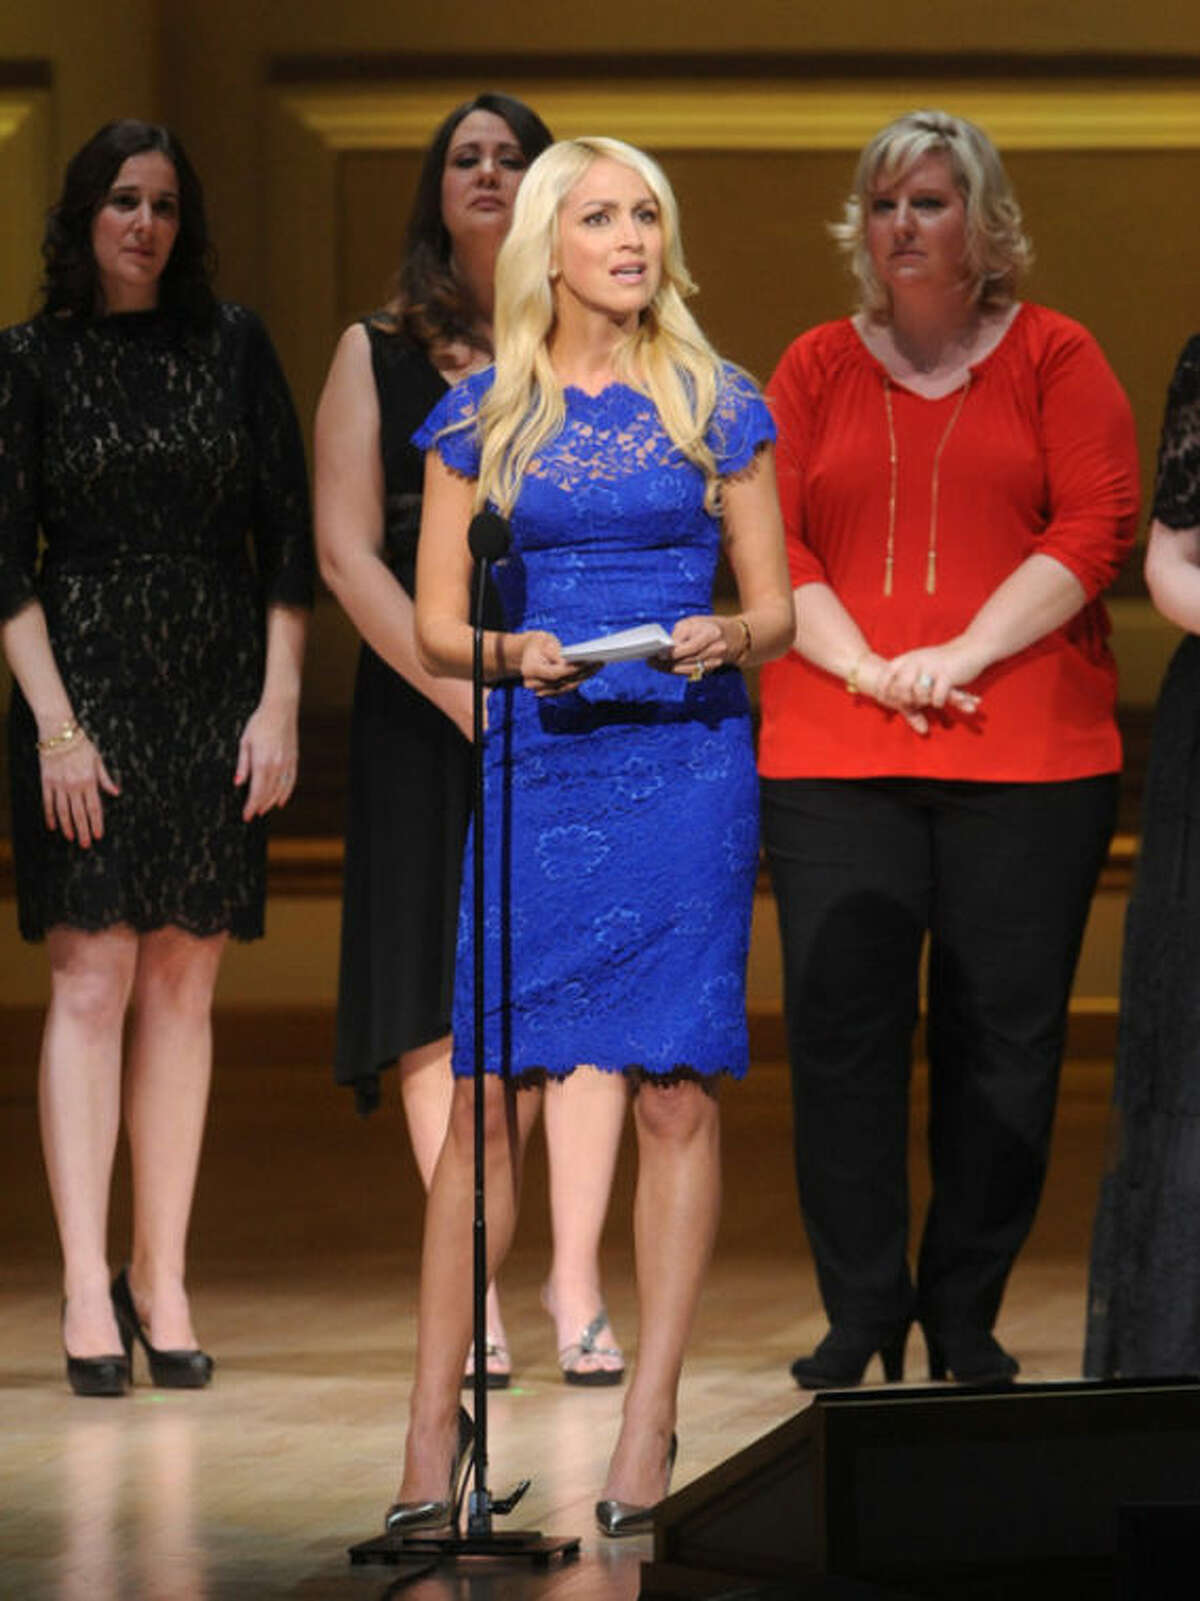 Sandy Hook Elementary School teacher Kaitlin Roig-Debellis accepts The Protector Award on stage at the 2013 Glamour Women of the Year Awards on on Monday, Nov. 11, 2013 in New York. (Photo by Brad Barket/Invision /AP Images)